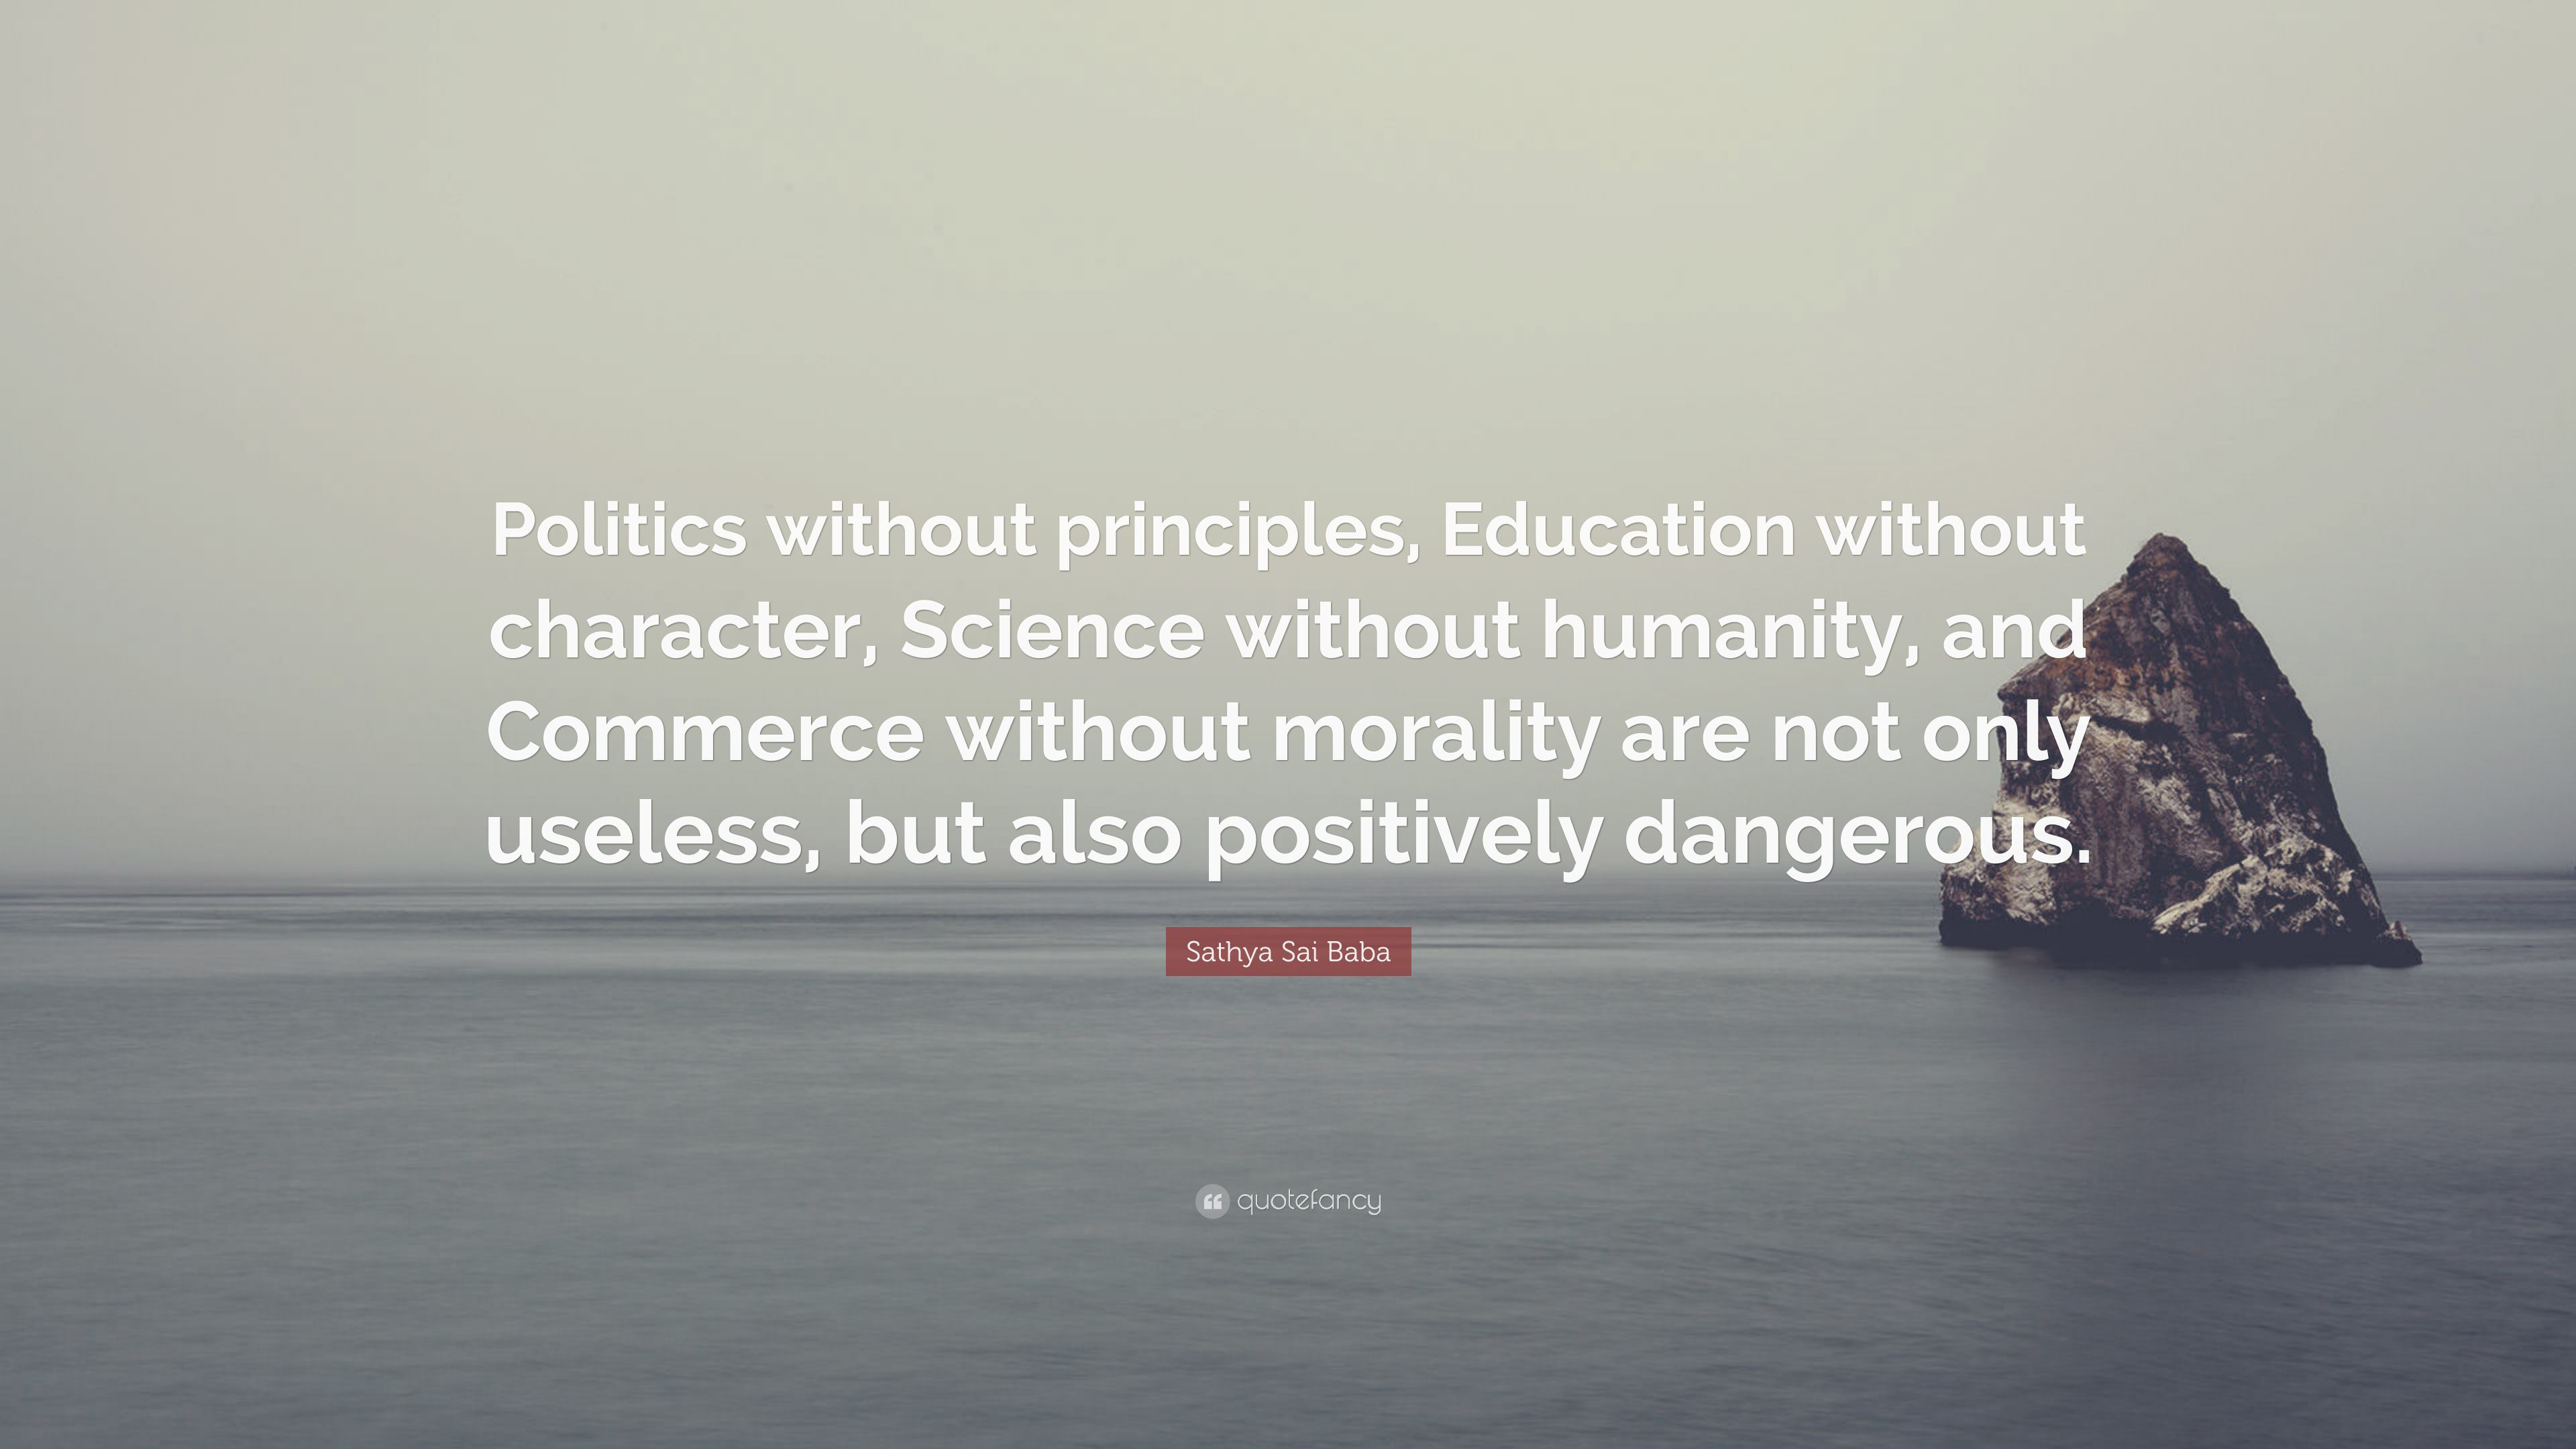 politics without principles Wealth without work pleasure without conscience science without humanity knowledge without character politics without principle commerce without morality.